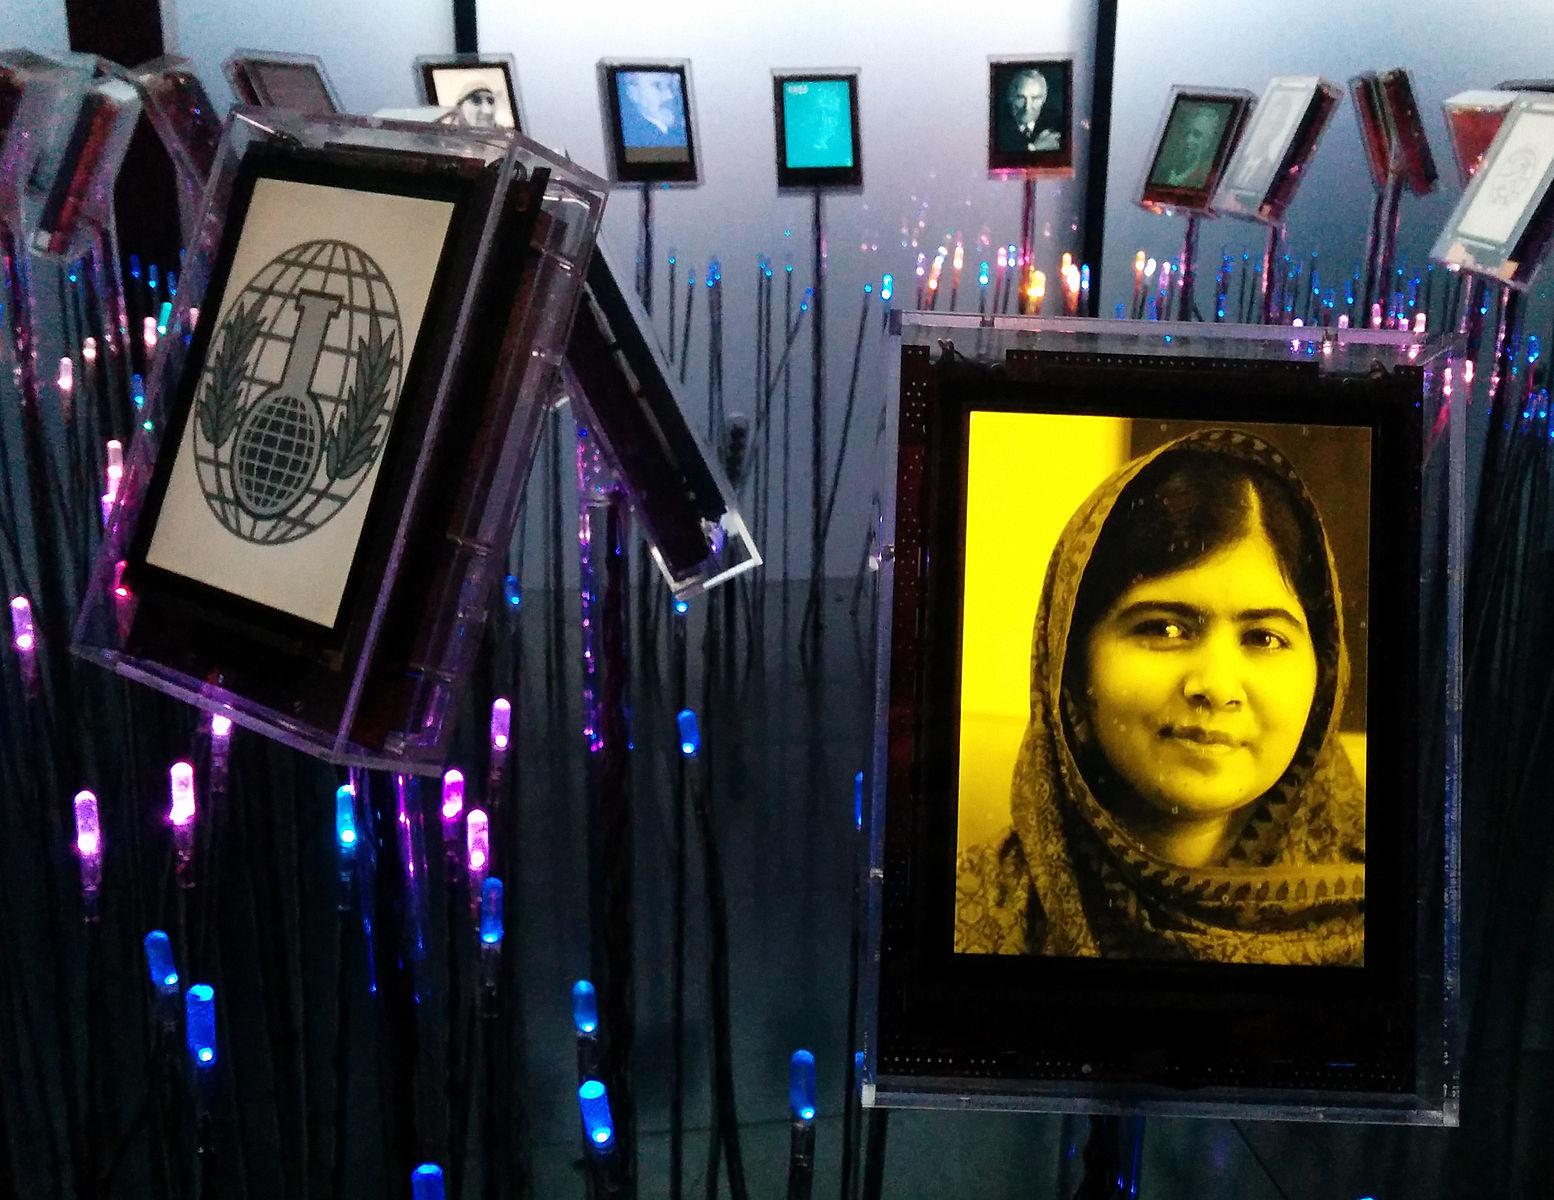 Expo_at_Nobel_Peace_Center_-_Malala_Yousafzai_2014-10-10.jpg